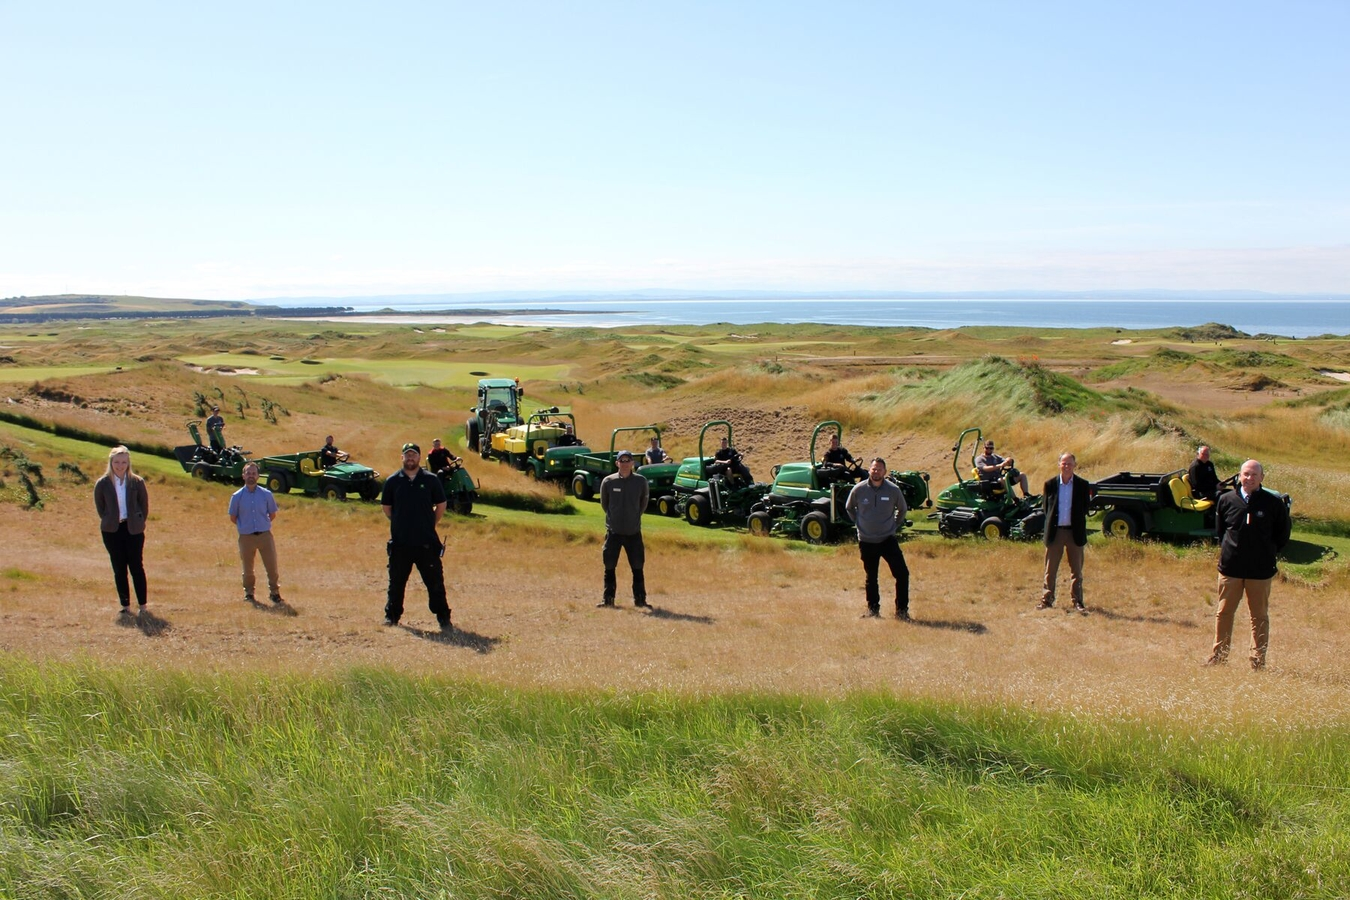 John Deere, Double A and Dumbarnie Links greenkeeping staff with some of the new John Deere machines on the links overlooking the Firth of Forth.